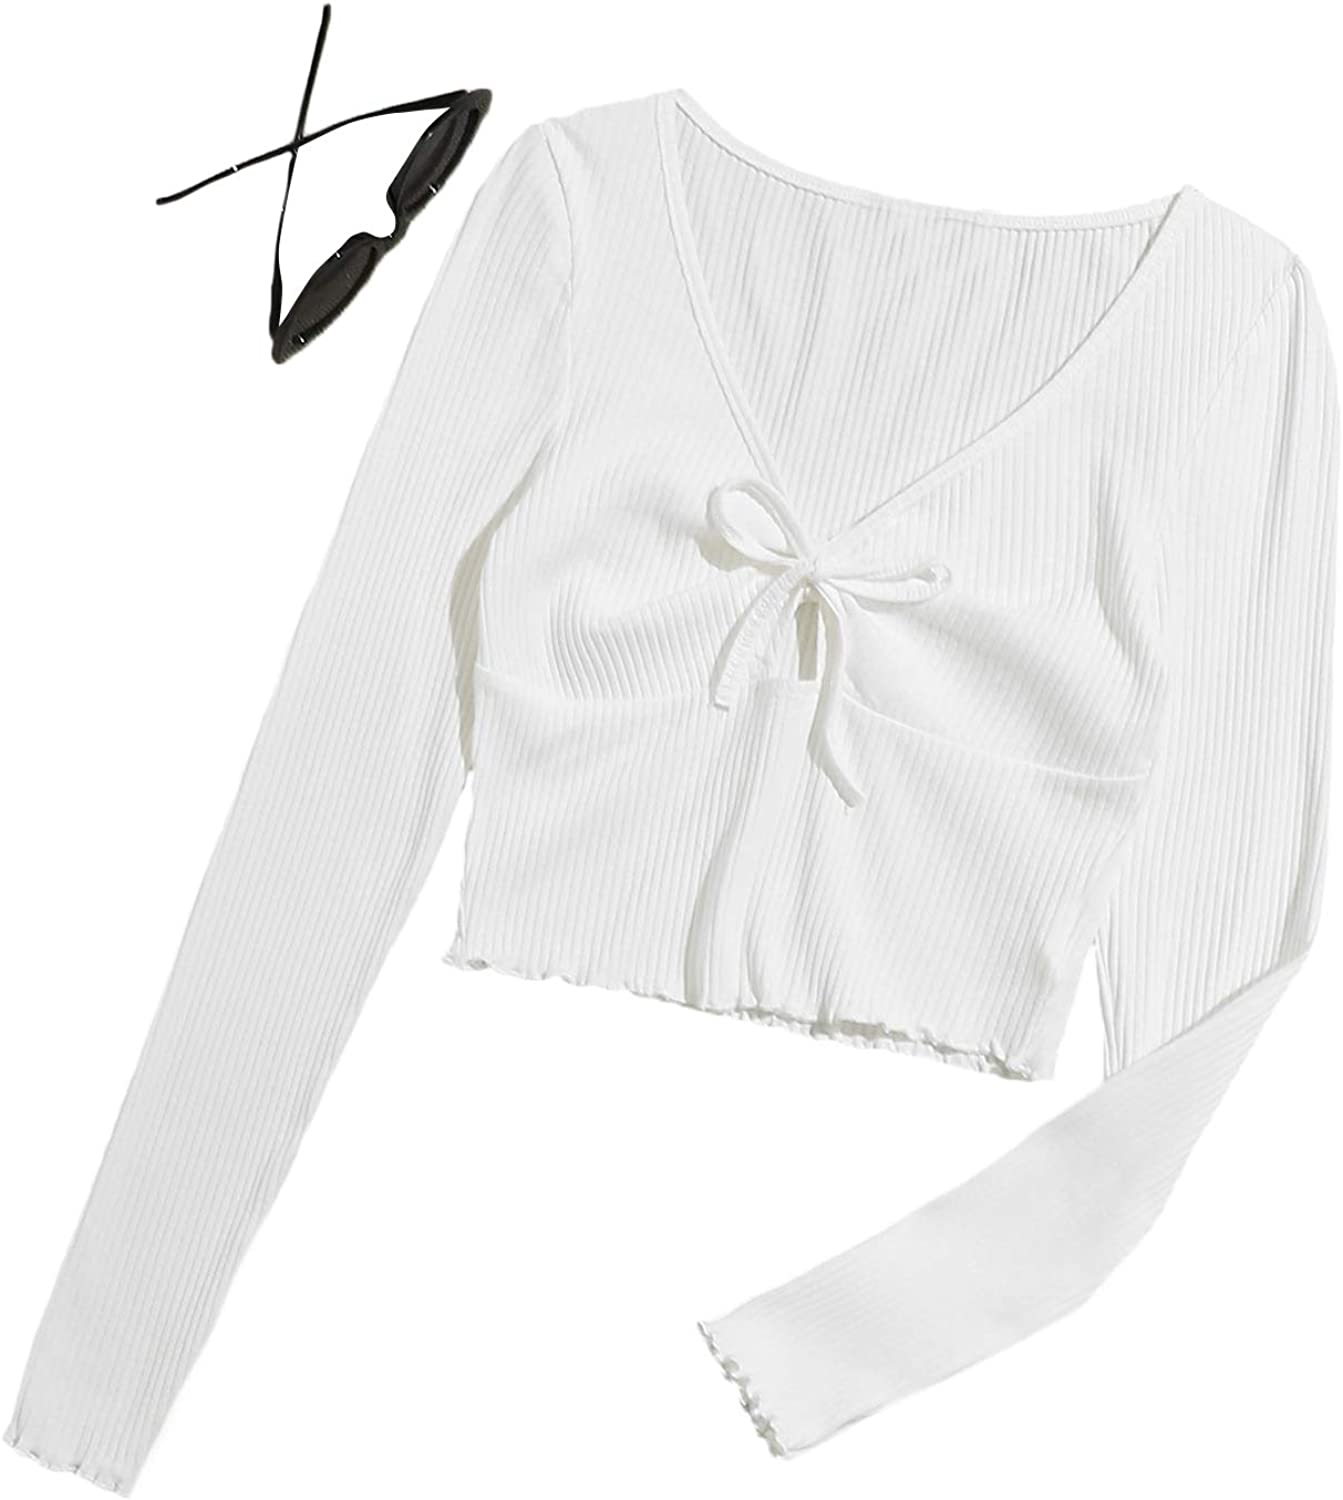 Romwe Women's Ribbed Knit Long Sleeve Scoop Neck Button Down Slim Fit Crop Tops Blouse